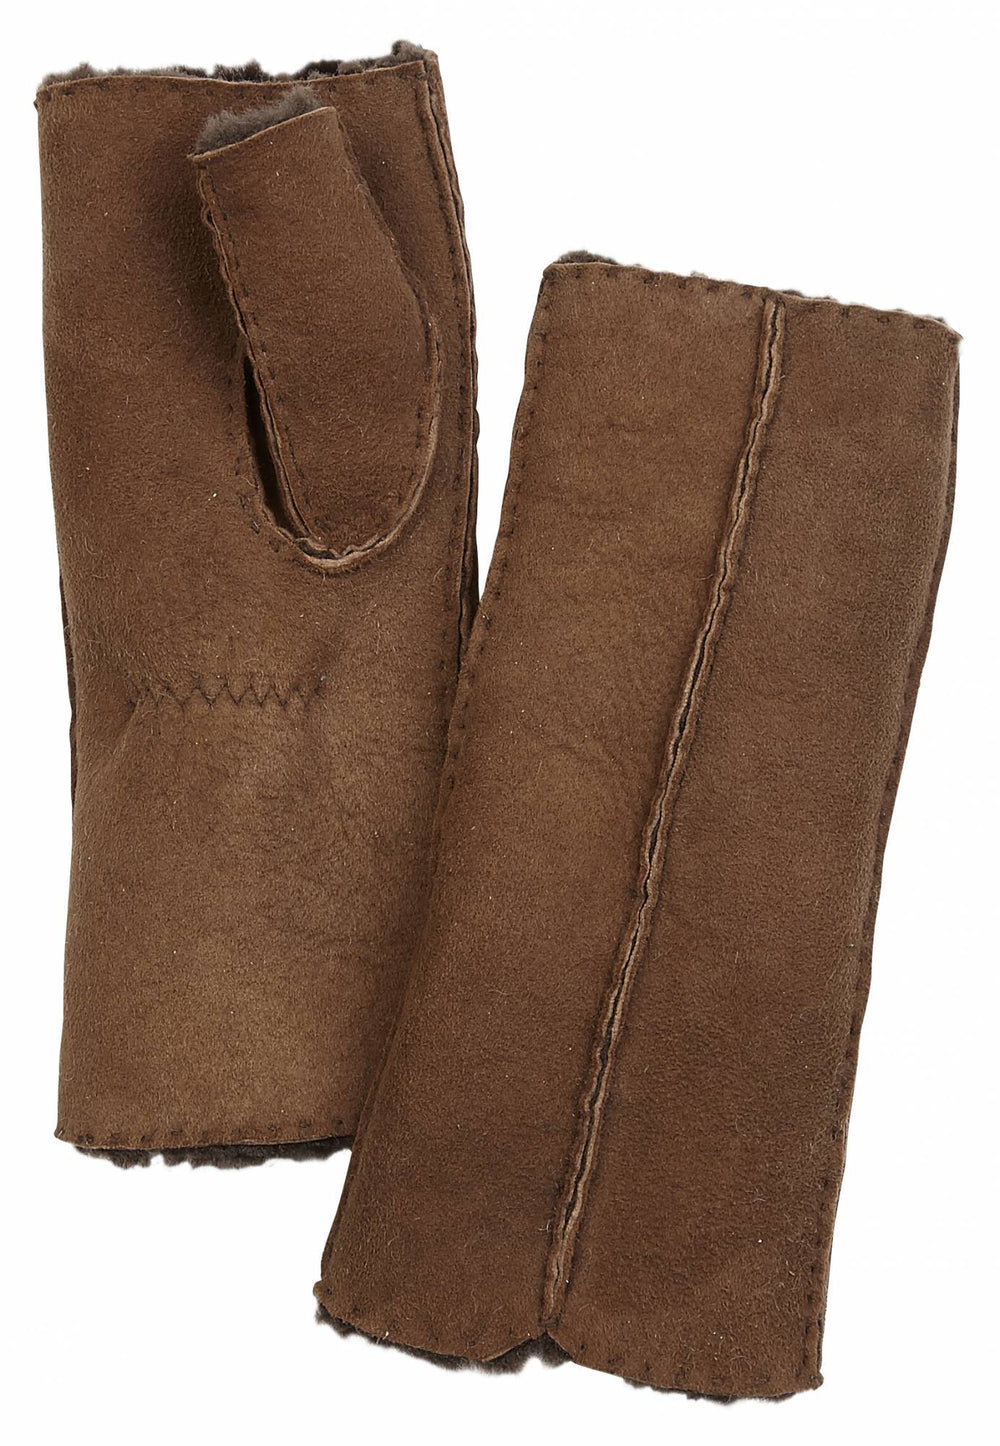 WOMEN'S SHEARLING WRISTWARMERS